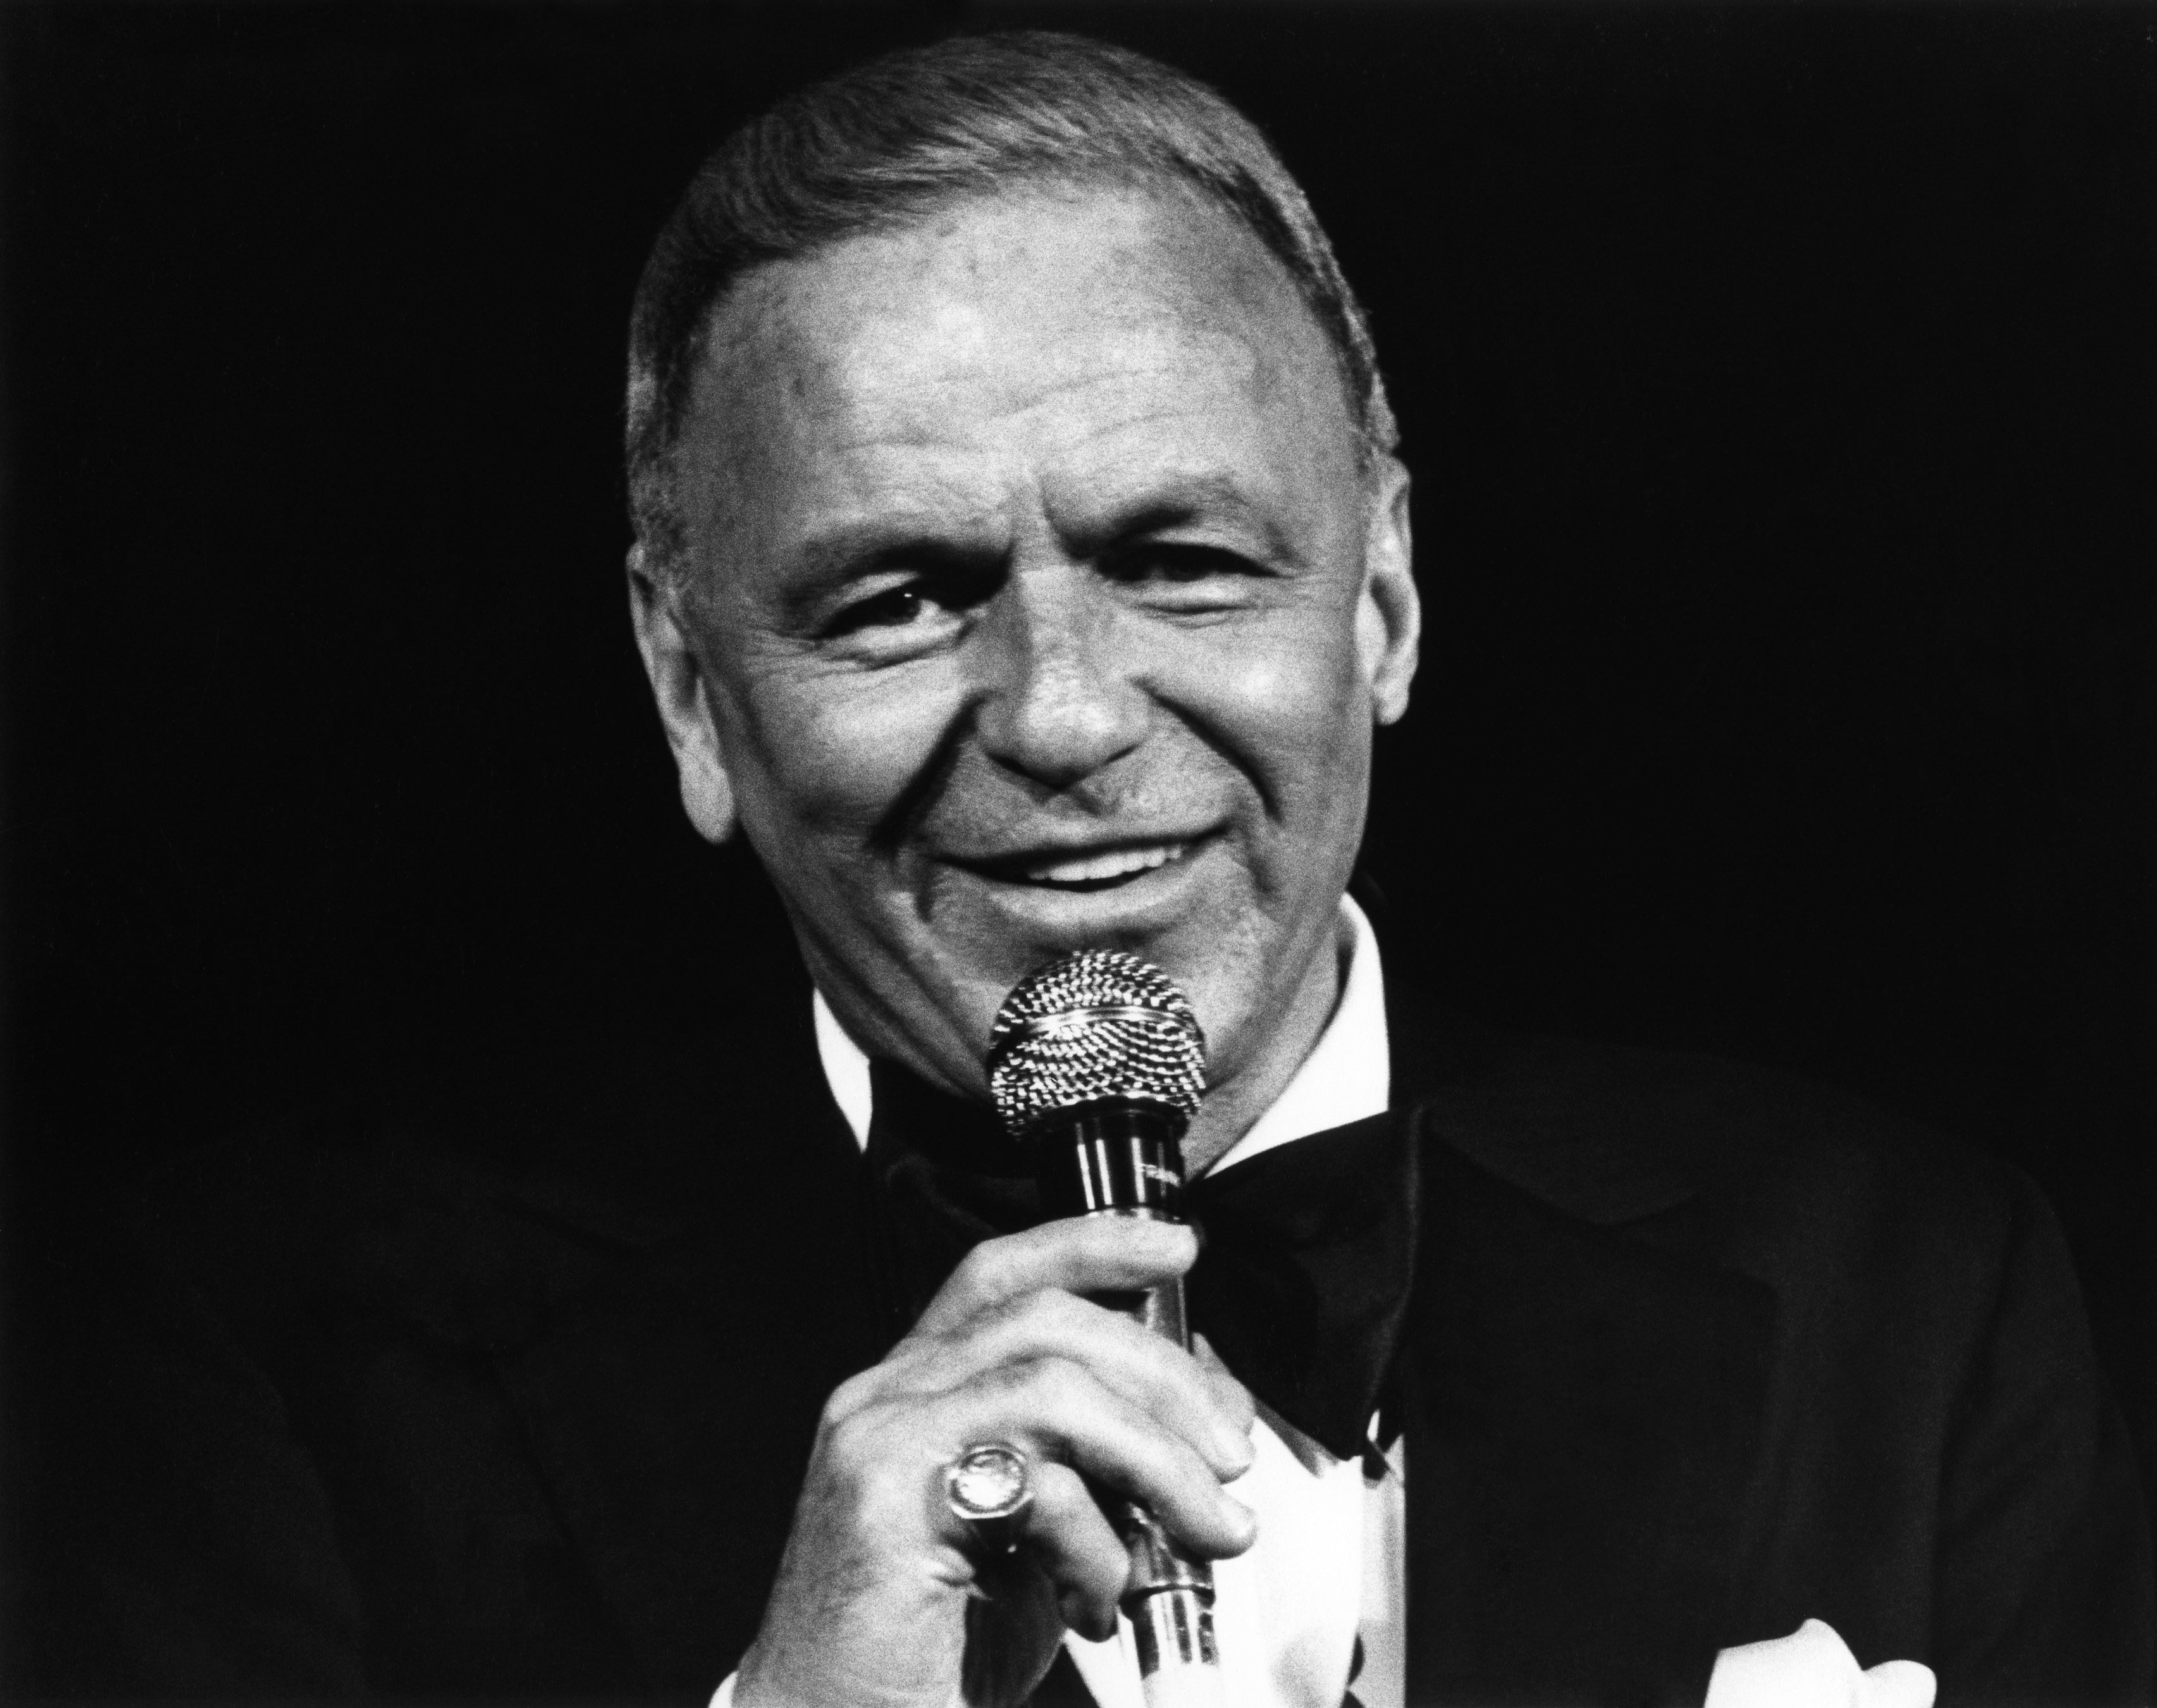 : Singer Frank Sinatra performs at The Universal Amphitheatre on July 6, 1980 in Universal City, Los Angeles, California | Photos: Getty Images